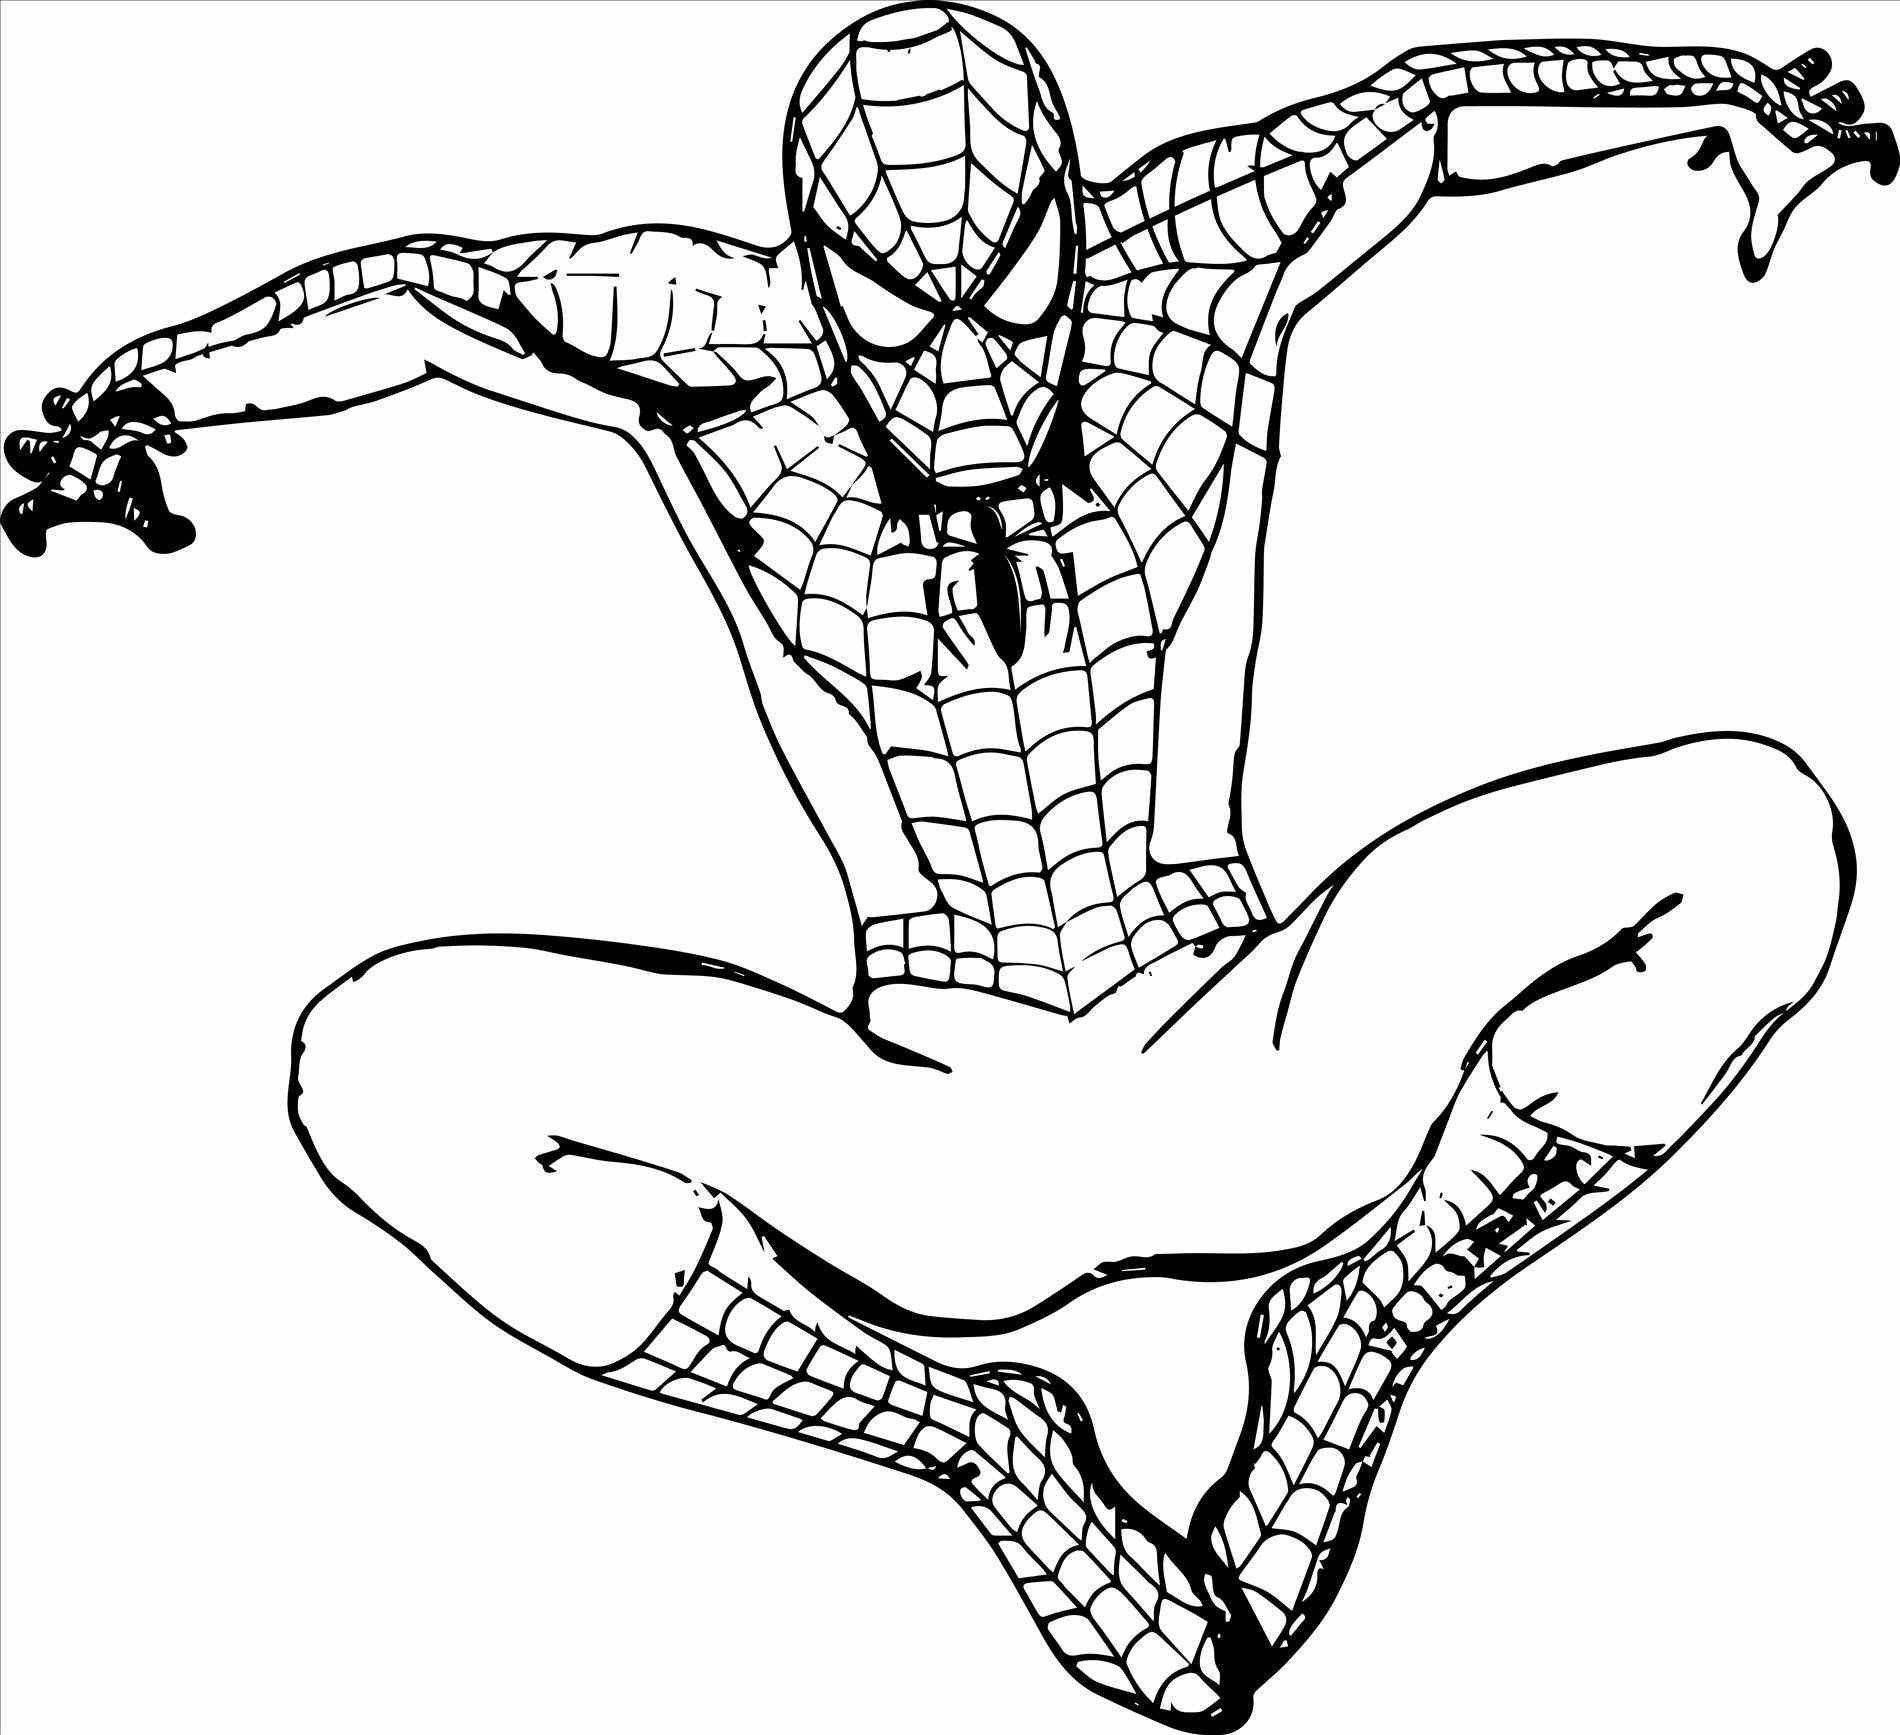 Super Heroes Coloring Pages Inspirational Free Coloring Pages Superheroes Fresh Superheroes Easy Superhero Coloring Pages Superhero Coloring Spiderman Coloring